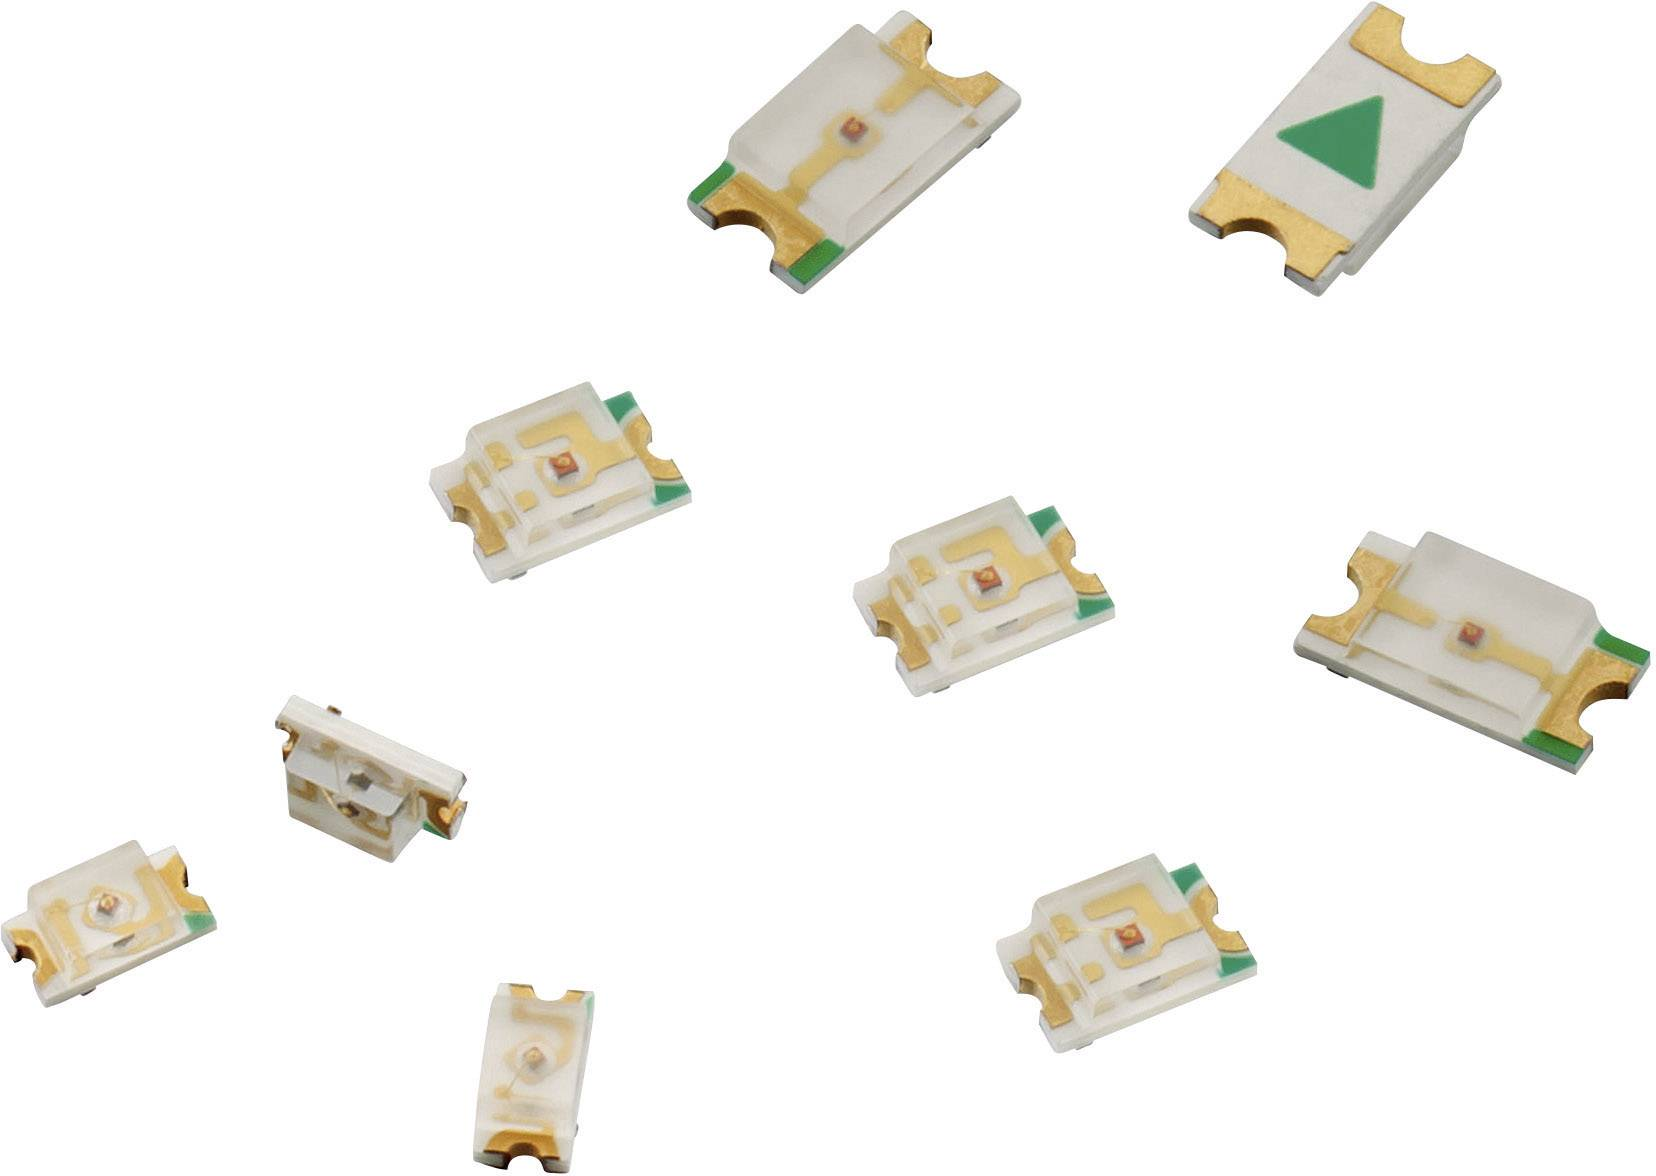 10 x Yellow 0805 SMD Chip LED